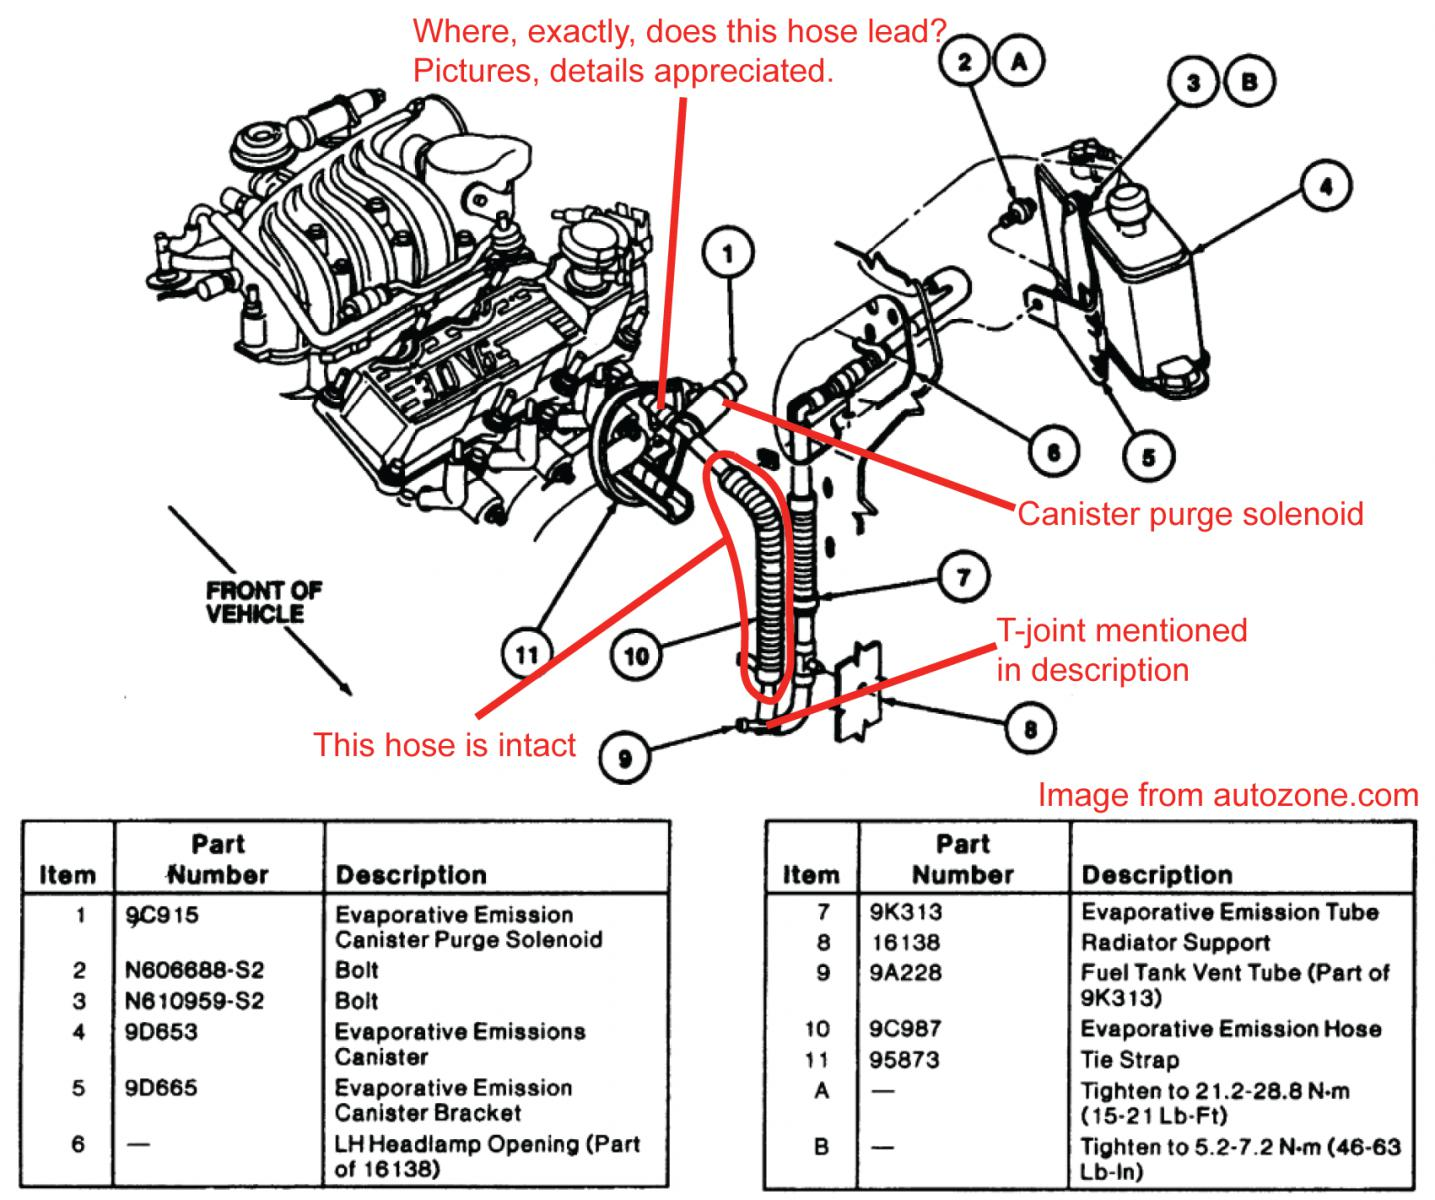 2005 Ford Taurus Fuel System Diagram - Wiring Diagram M6 F Fuel System Wiring Diagram Free Picture on